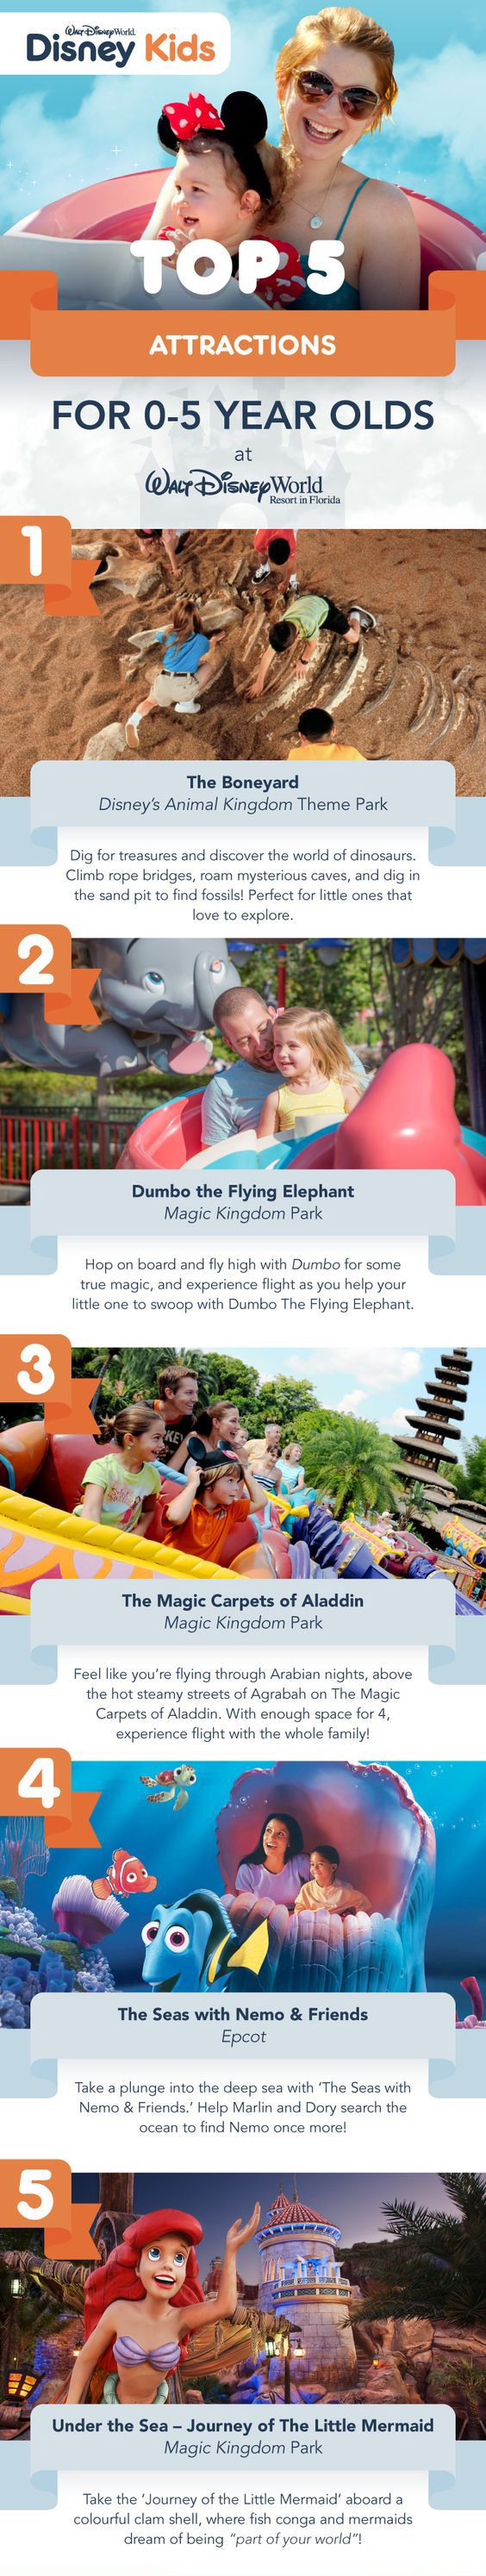 There's so much to see and do with younger children at Walt Disney World. Discover the top 5 attractions for kids aged 0-5.